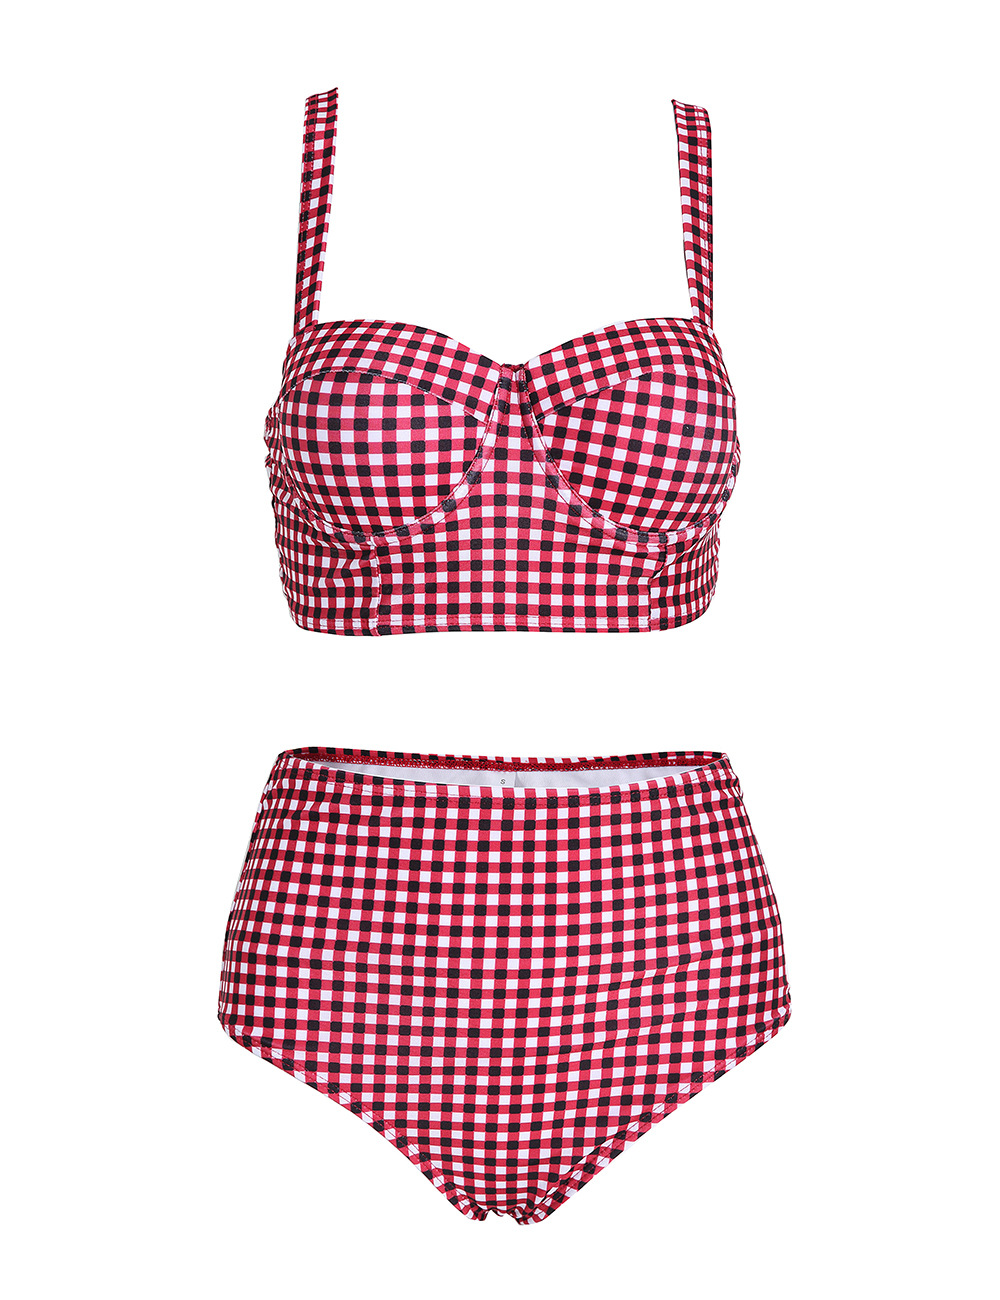 Hetuaf High-waisted Bikini New Style Two-piece Swimsuits Bandage Cloth Plaid EBay Hot Selling Solid Color Sexy Bikini Women's